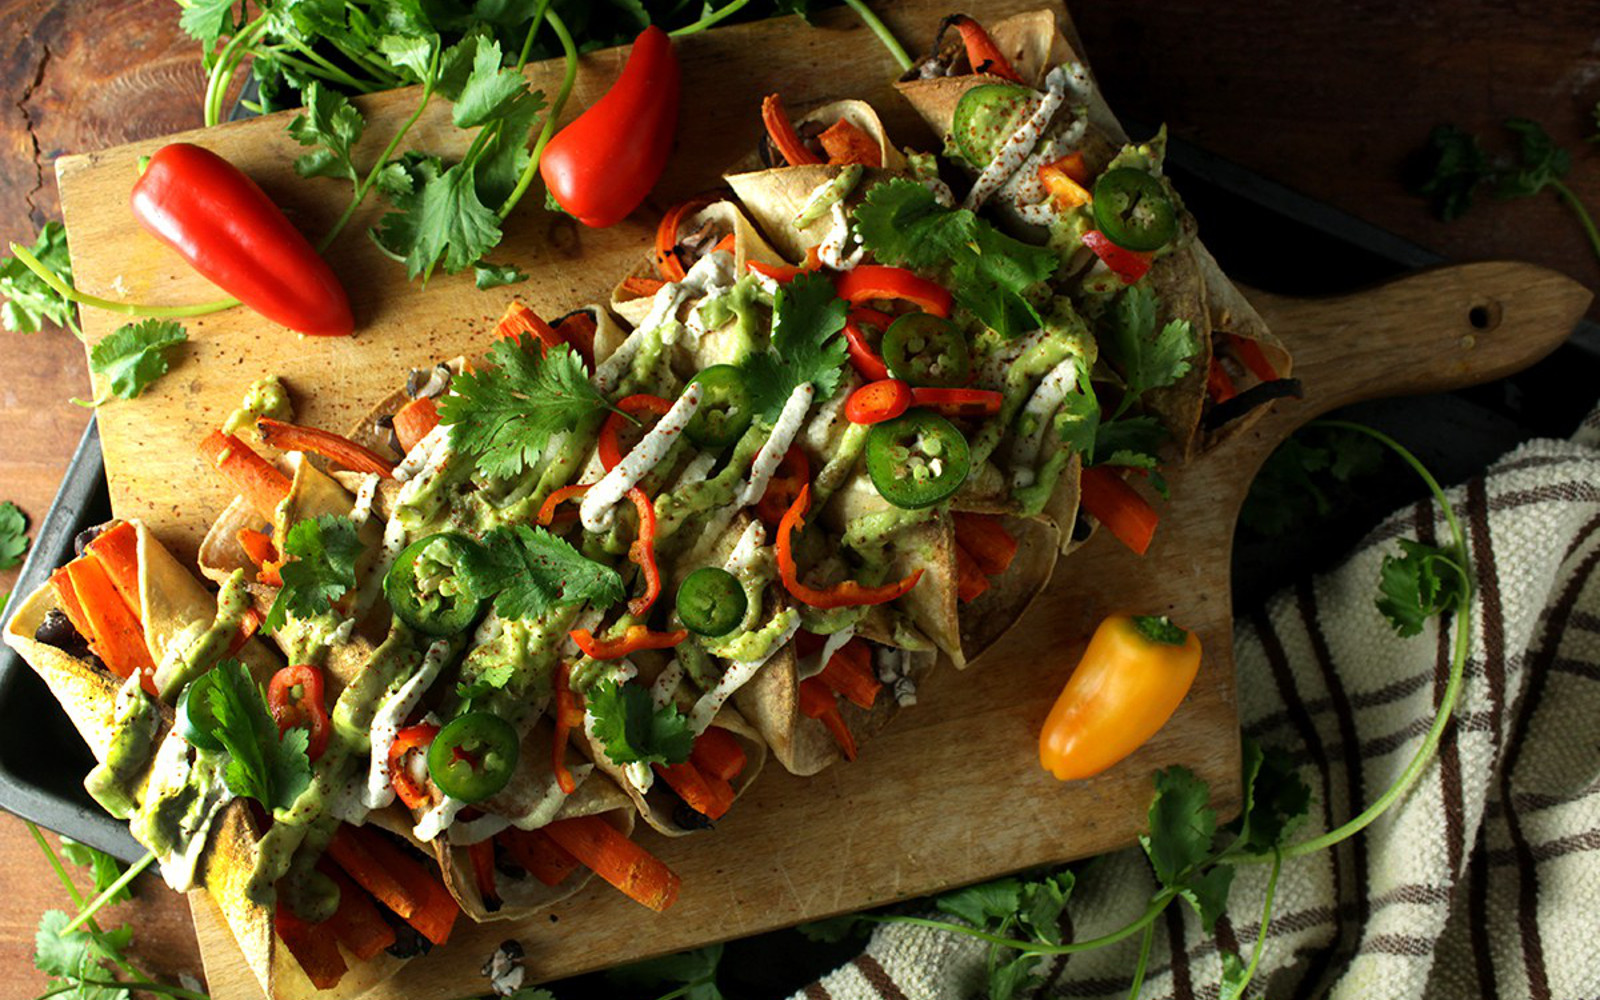 Black Bean and Roasted Carrot Tauquitos